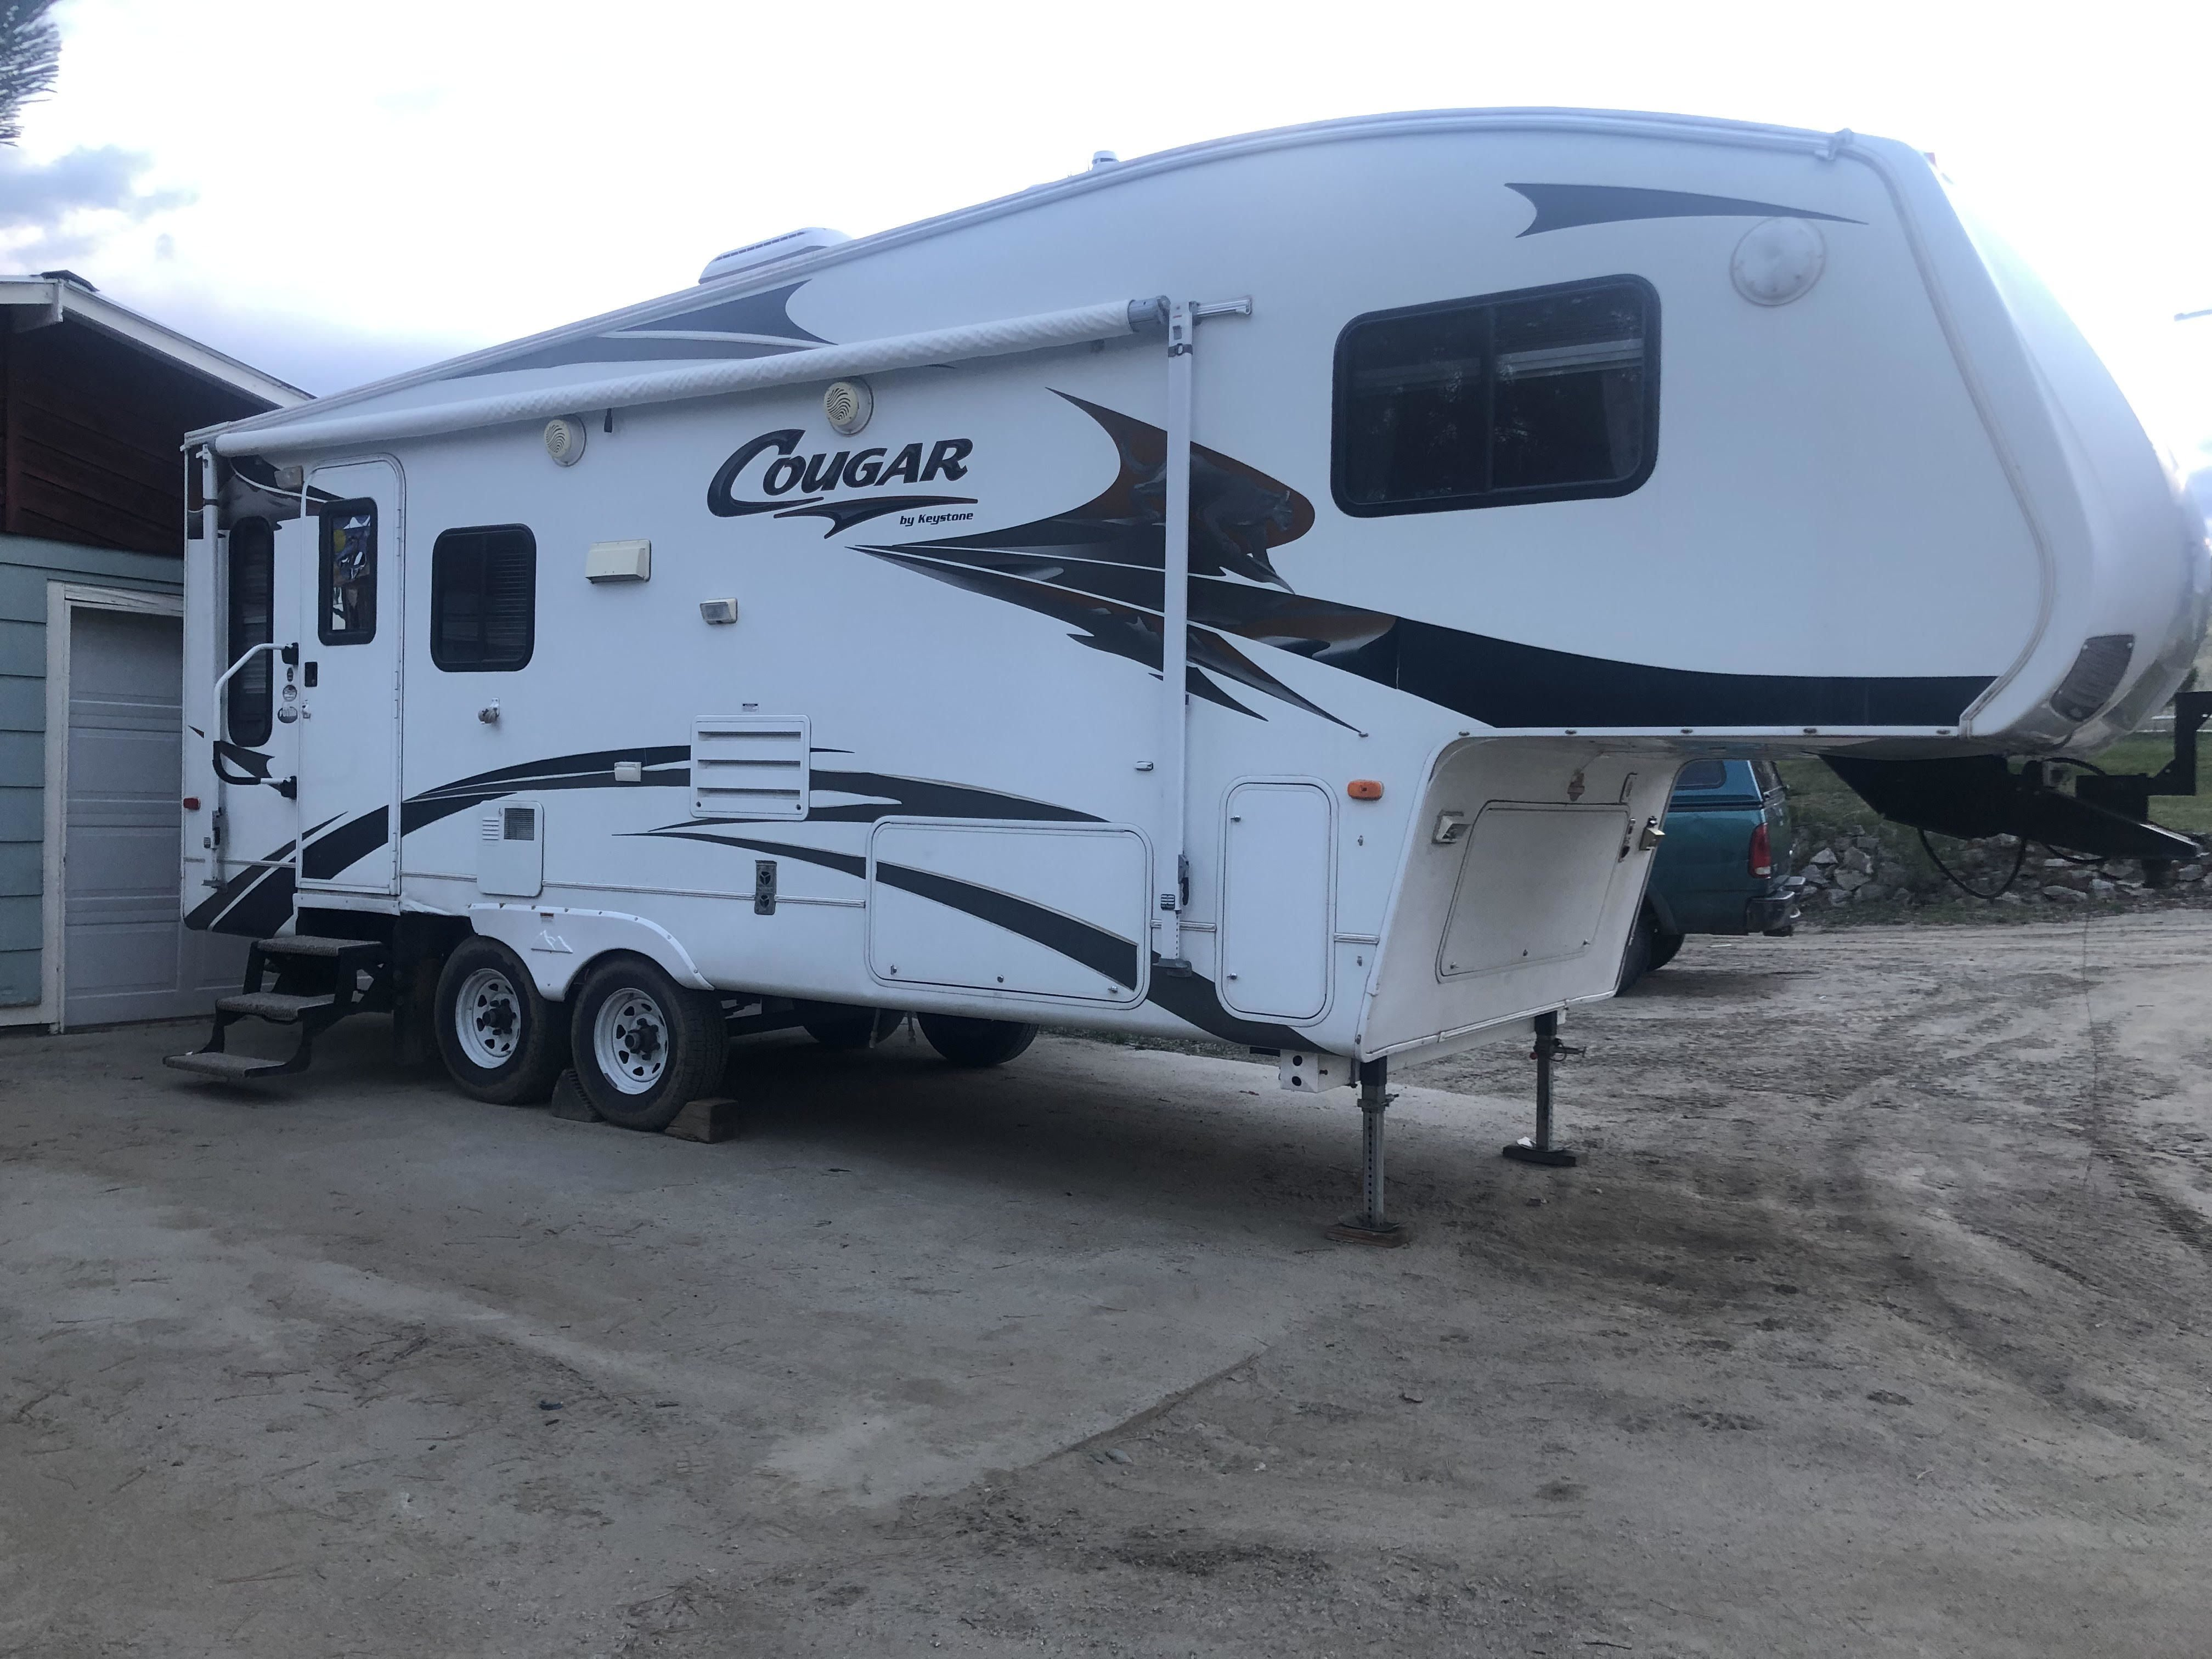 2008 Keystone Cougar Fifth Wheel 27 Ft image 1